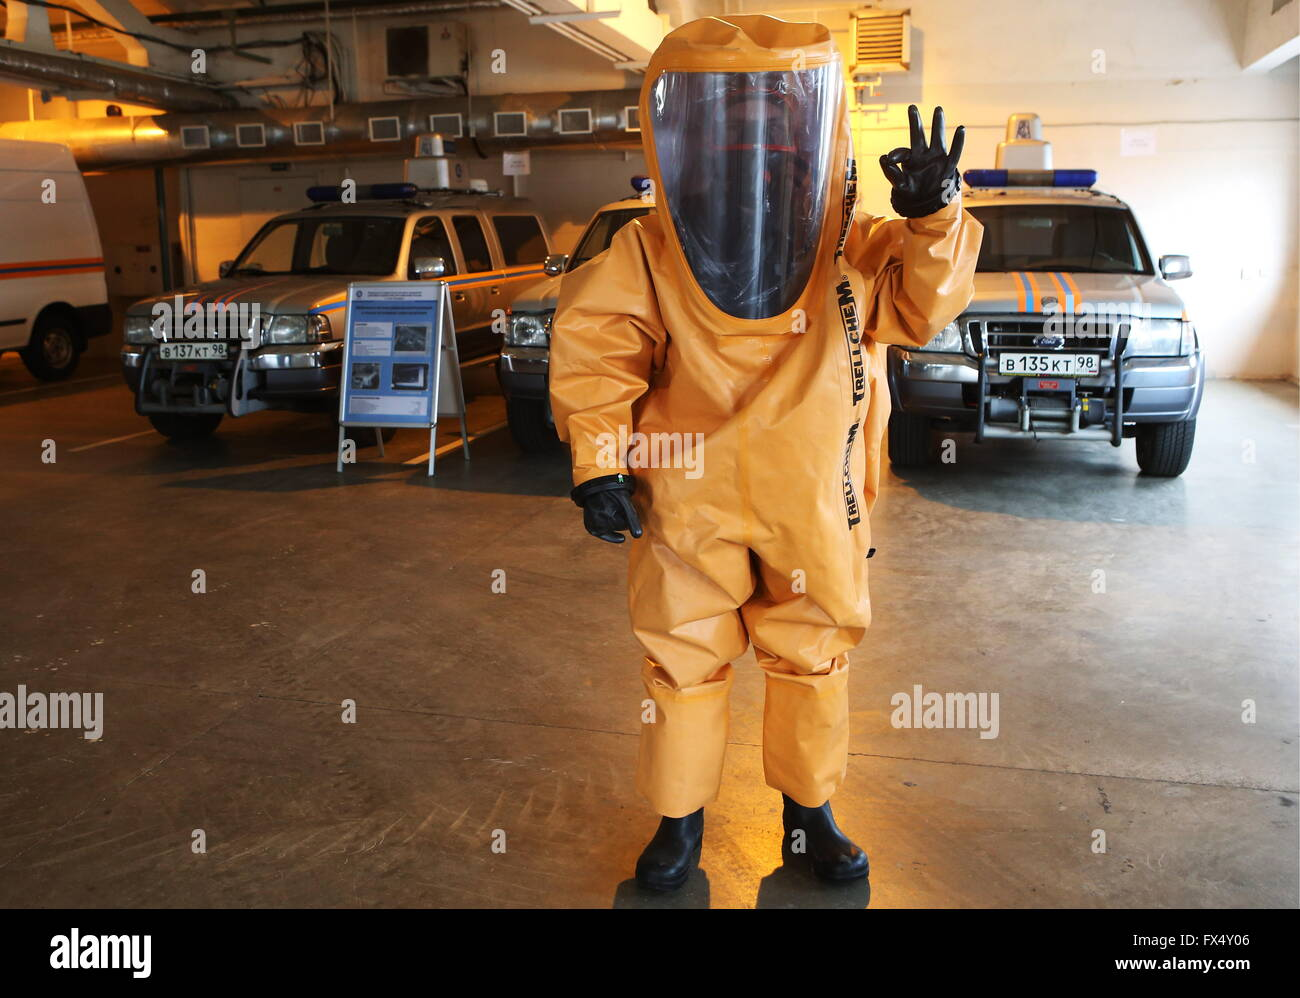 ST. PETERSBURG, RUSSIA. APRIL 6, 2016. Rosatom Emergency Service worker in a hazmat suit shows an OK gesture before - Stock Image